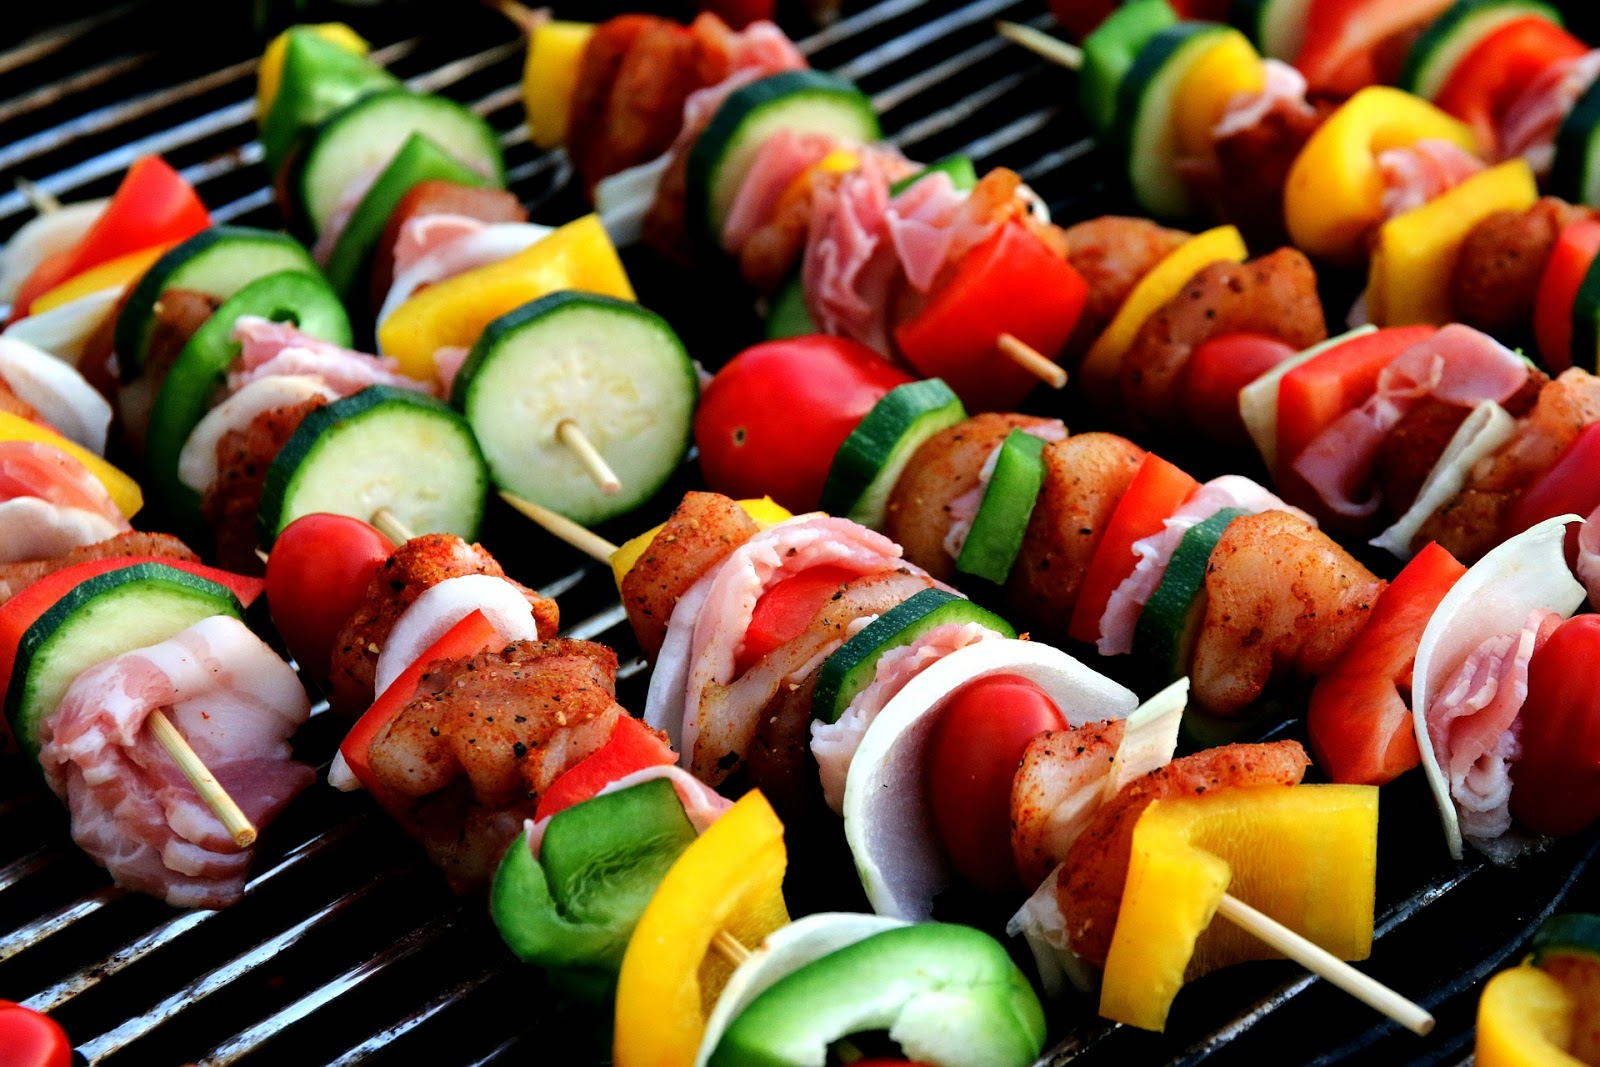 An interesting question: Is it possible for the nursing mother to have a shish kebab